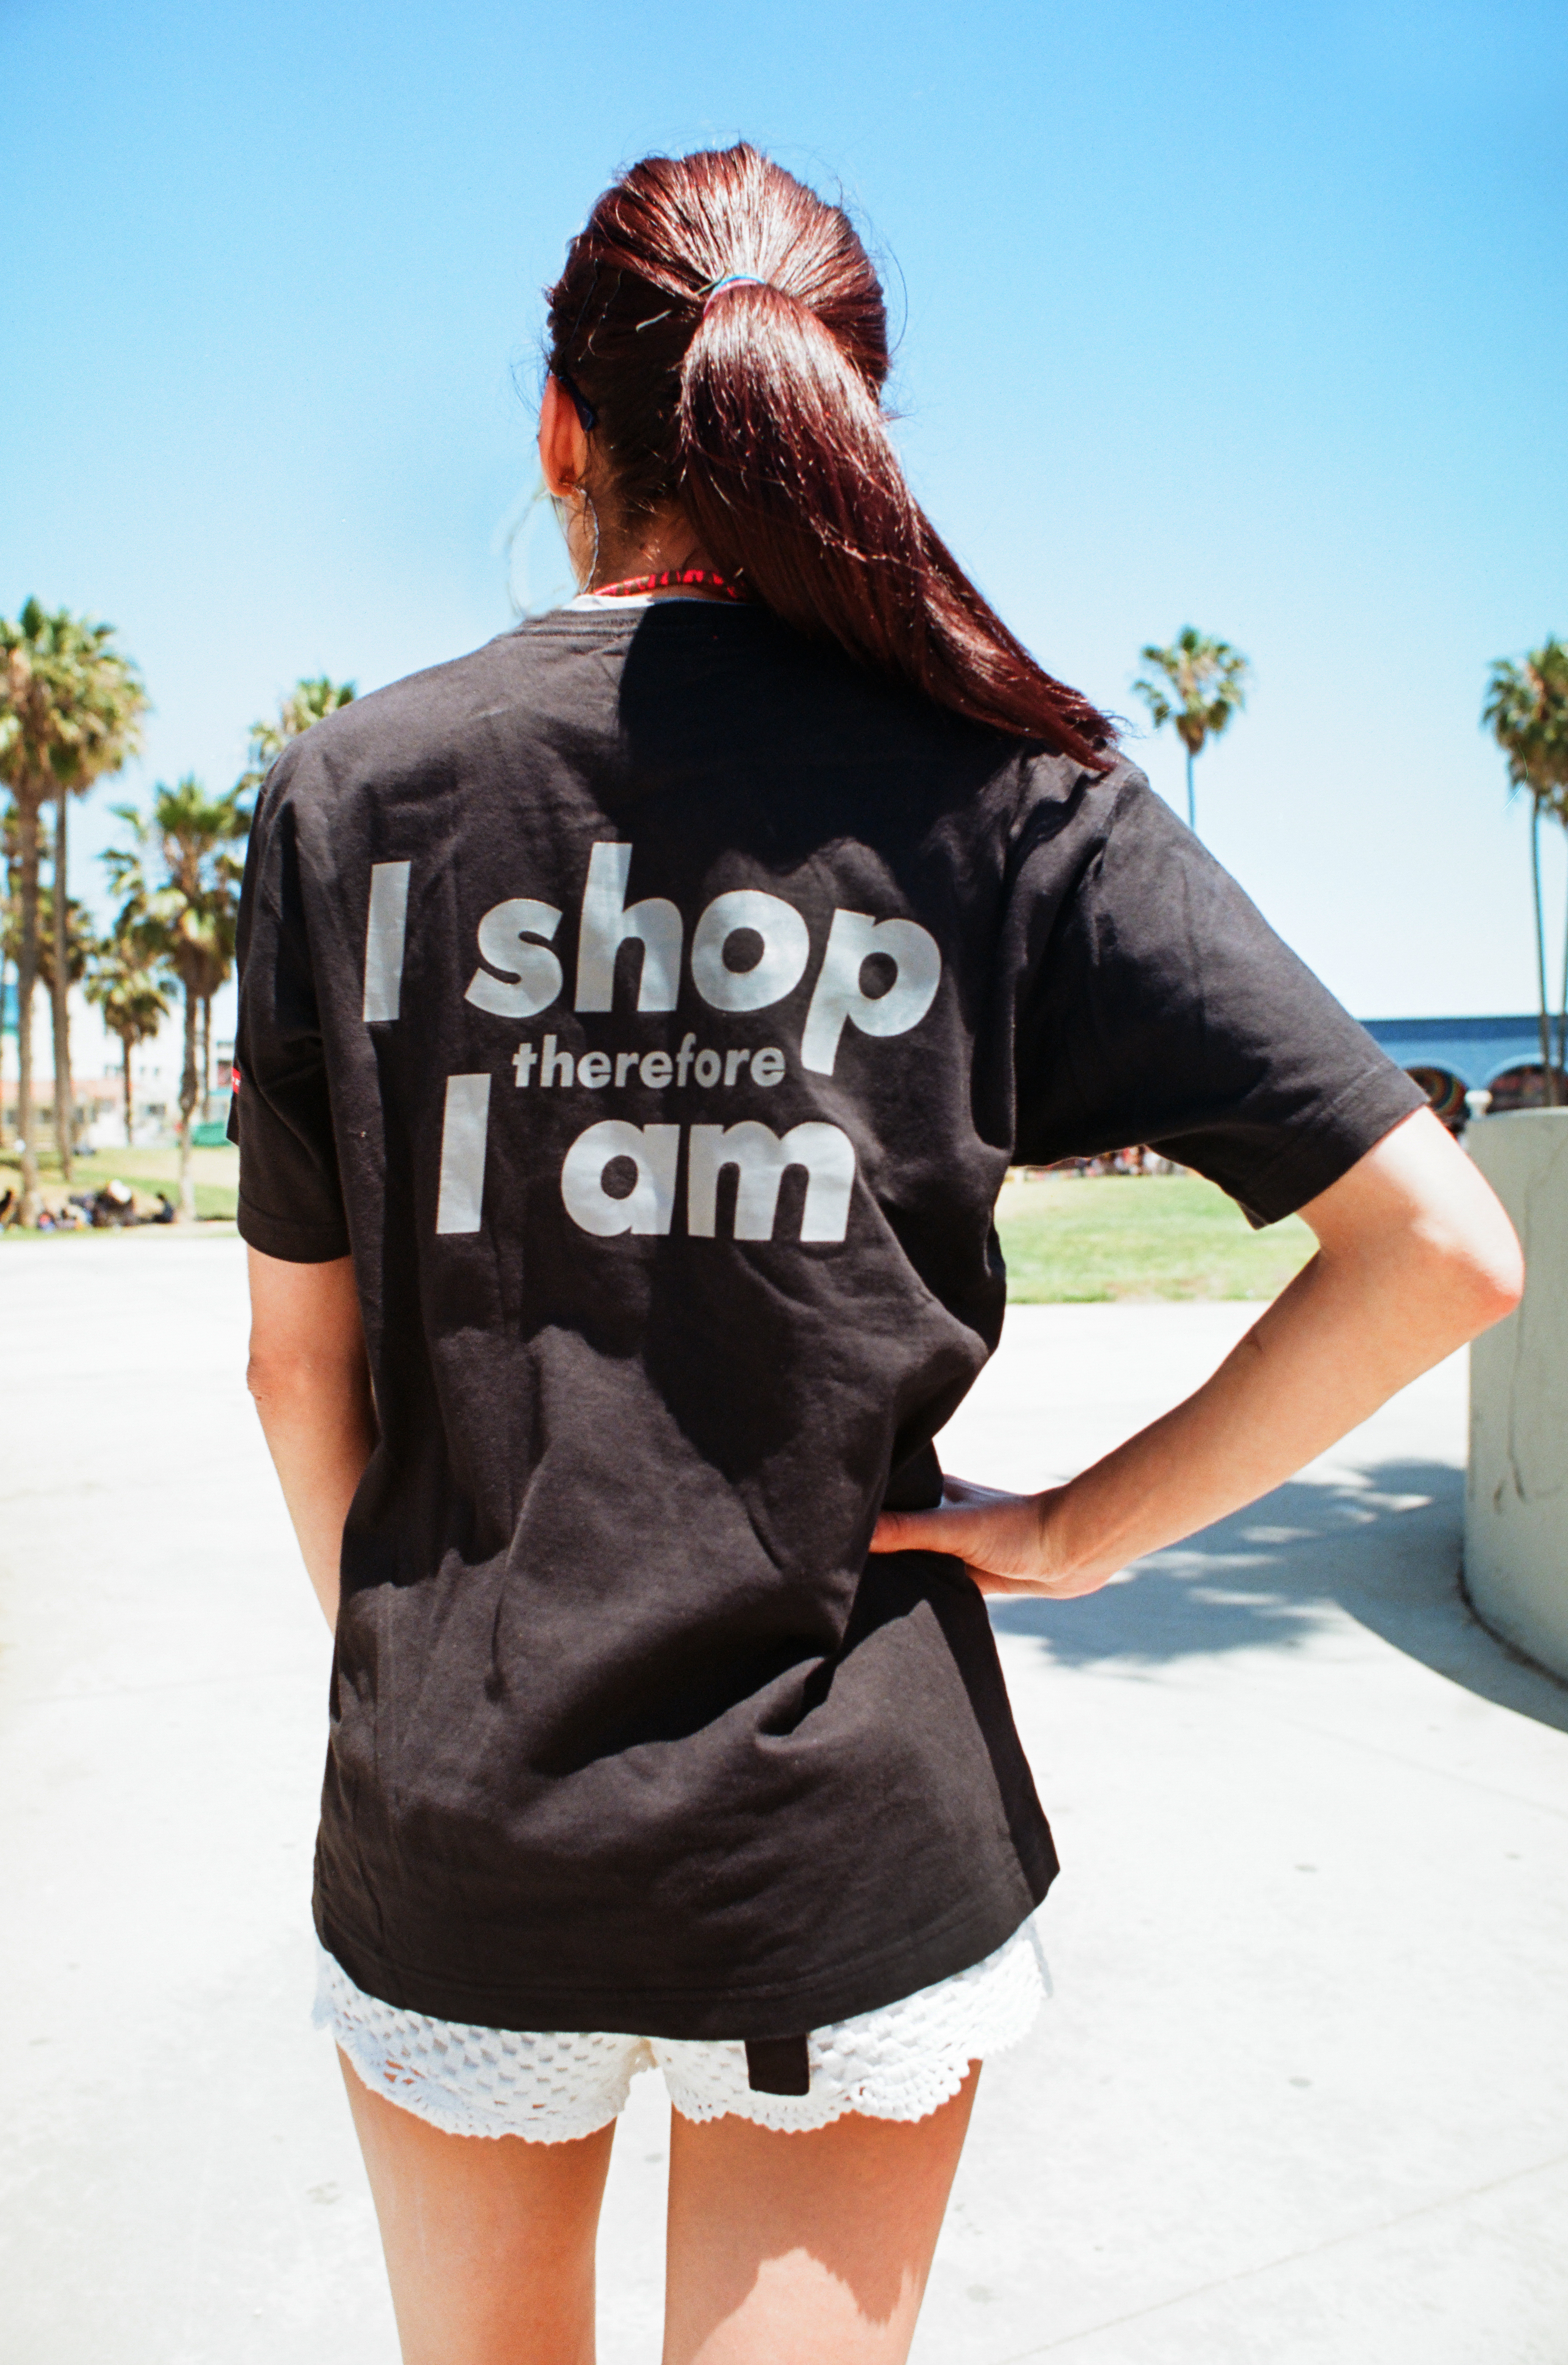 Barbara Kruger's 'I Shop therefore I Am '89'. Photograph by Susan A. Barnett, from her book A Typology of T-Shirts. Copyright © 2015. All Rights Reserved. FAD Magazine